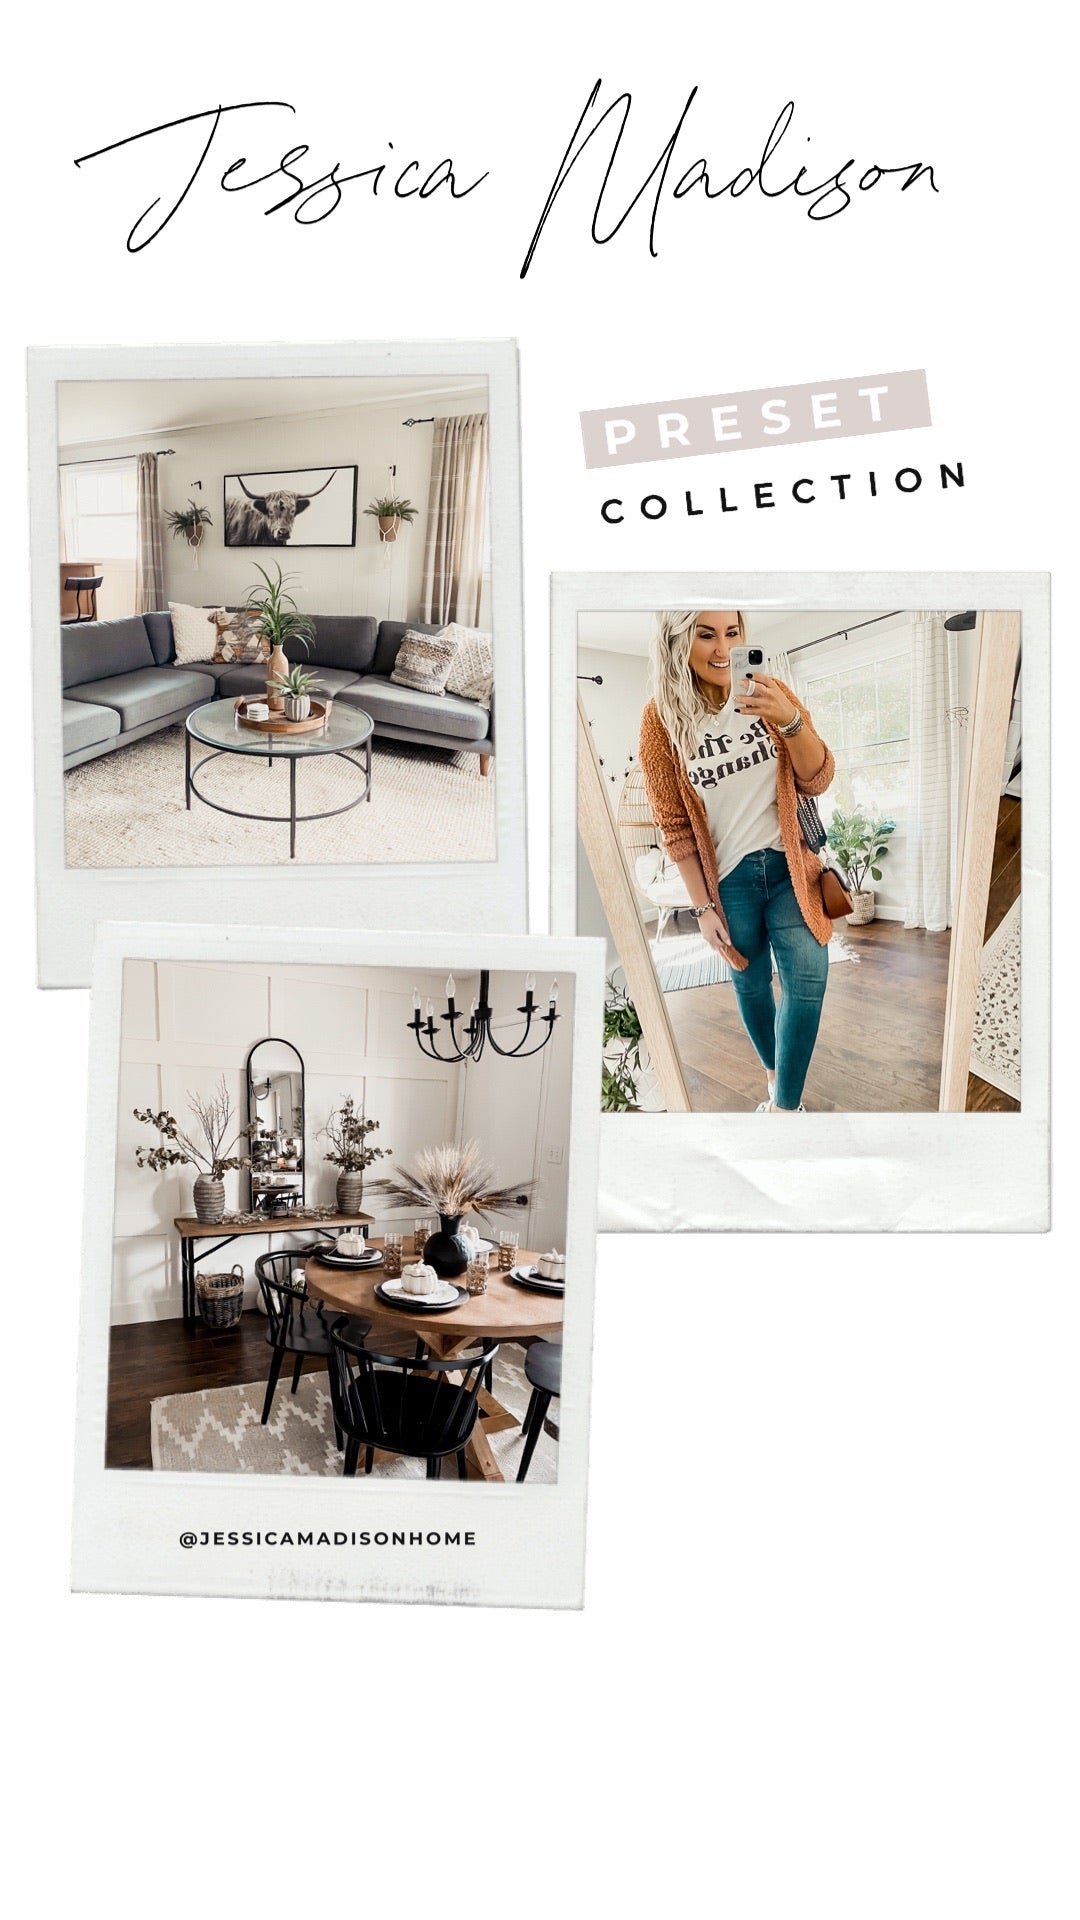 Jessica Madison Collection - @jessicamadisonhome - Lightroom Mobile Presets